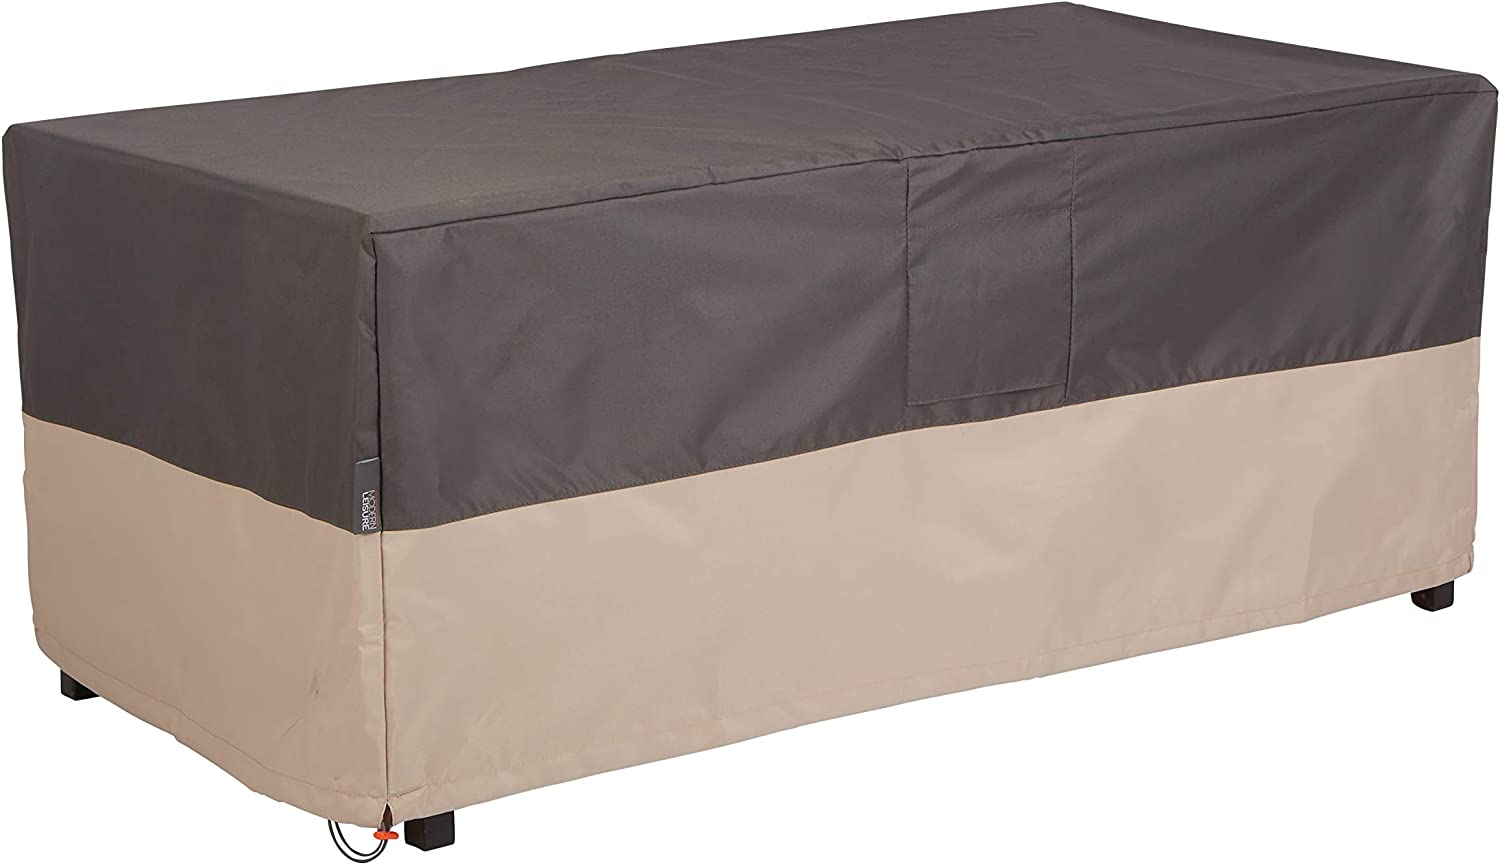 Modern Leisure, 48 L x 25 D x 18 H inches, Grey and Atmosphere 3014 Renaissance Ultralite Coffee Table//Ottoman Cover